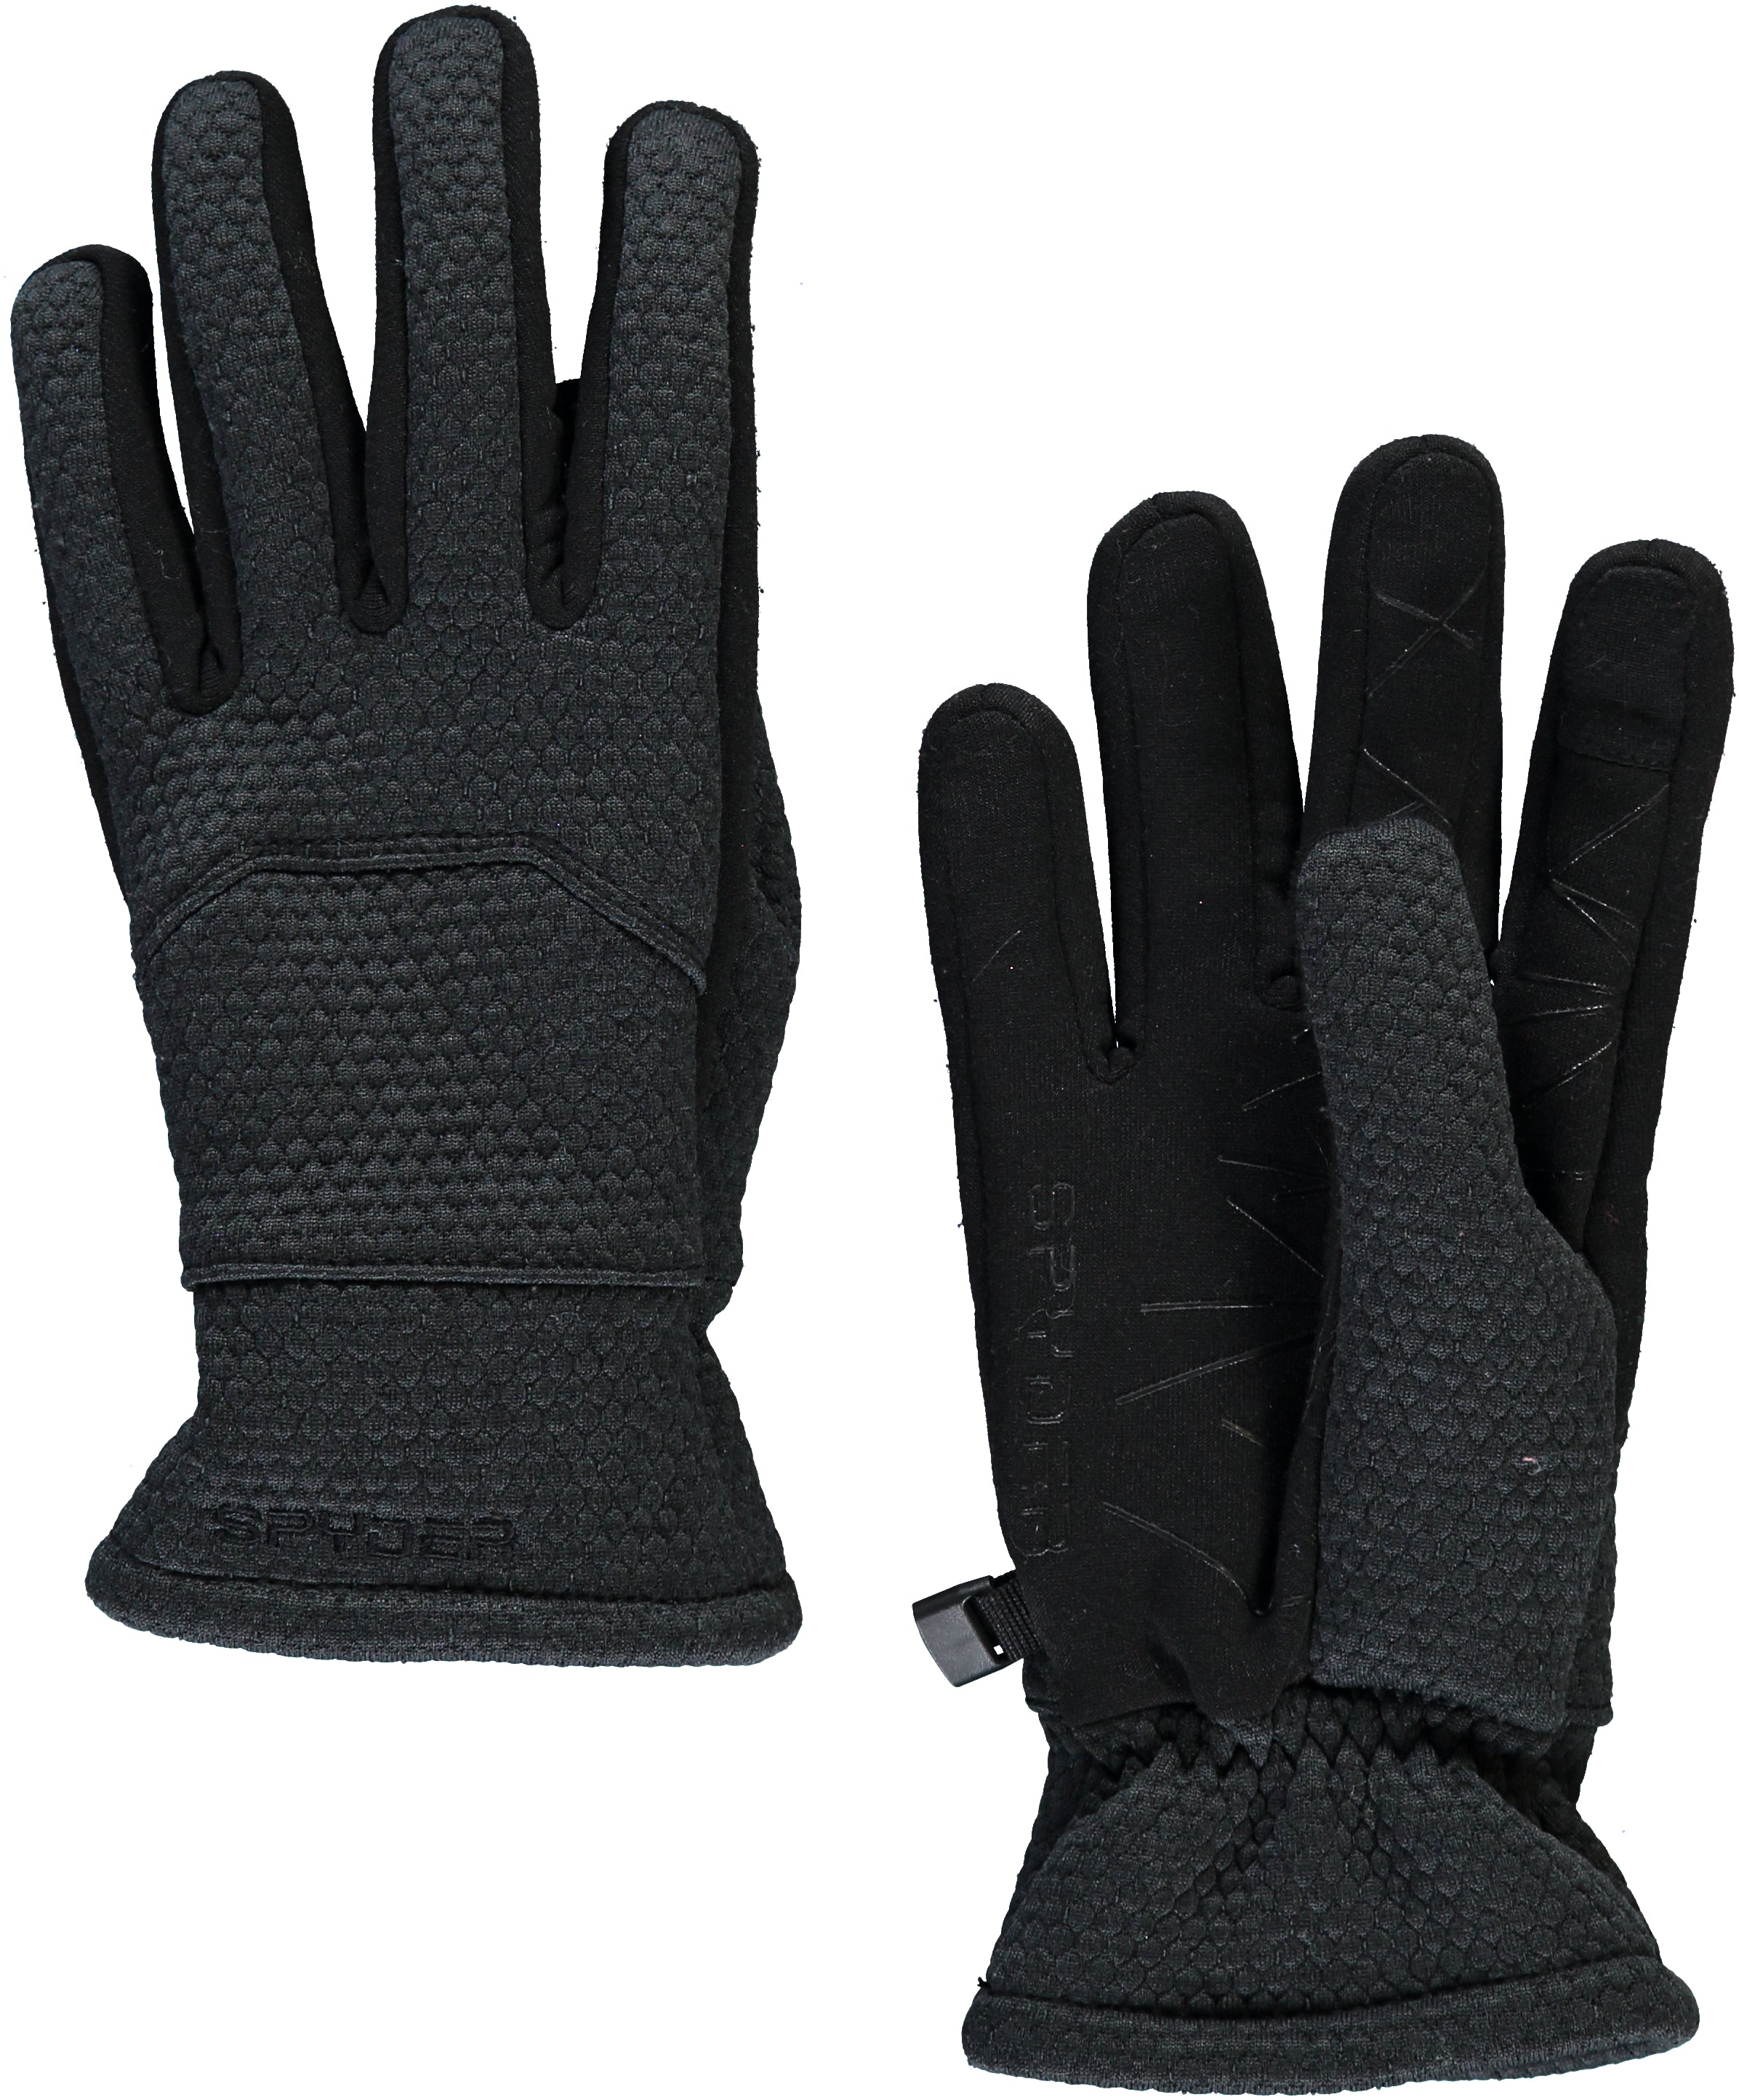 'Spyder' Women's Encore Gloves - Black